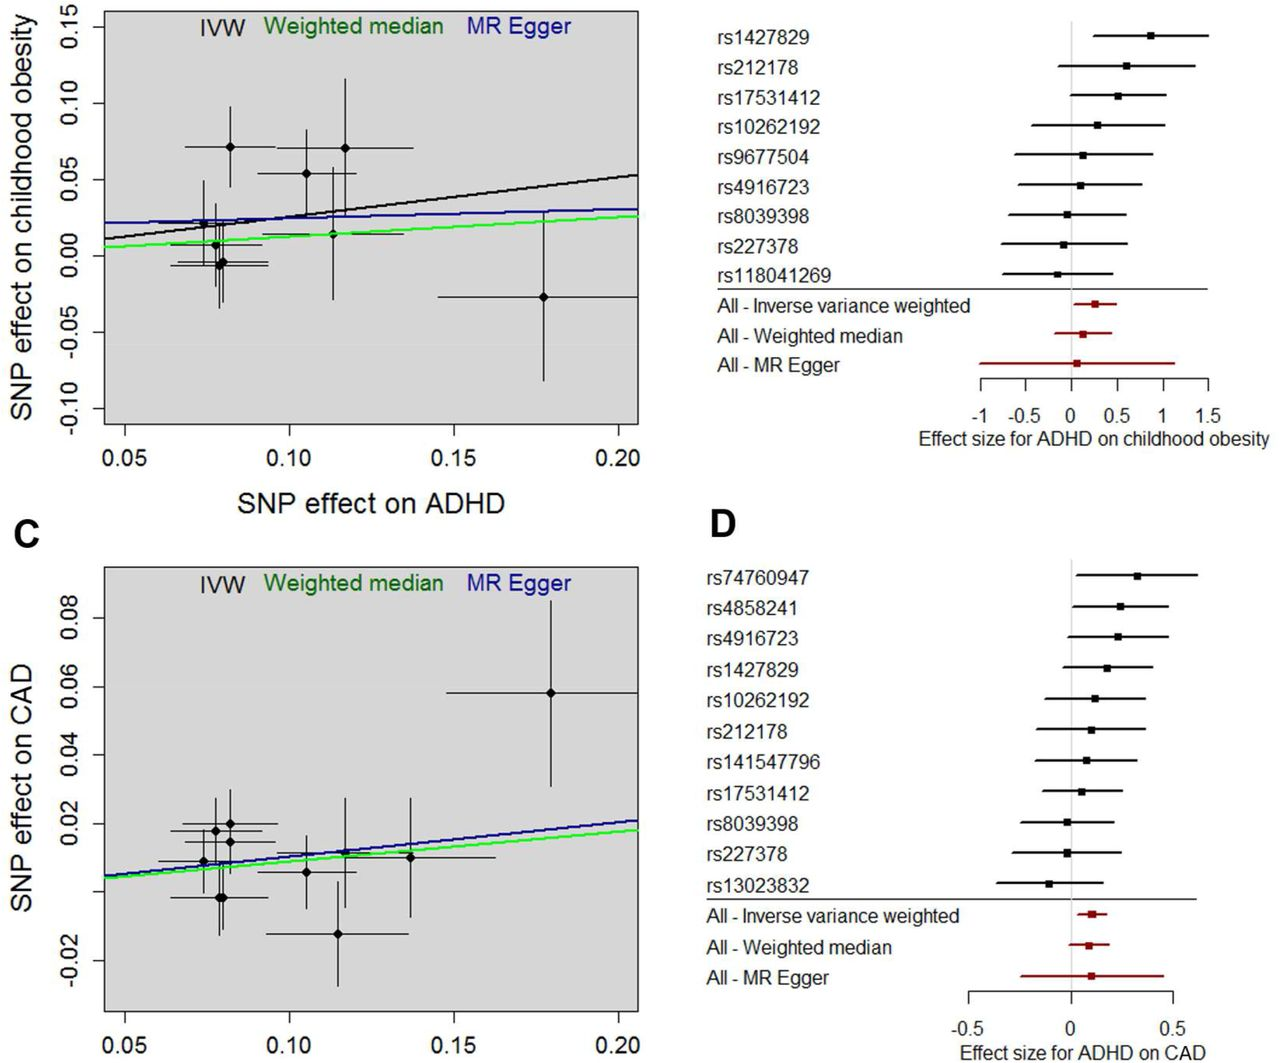 ADHD genetic liability and physical health outcomes - A two